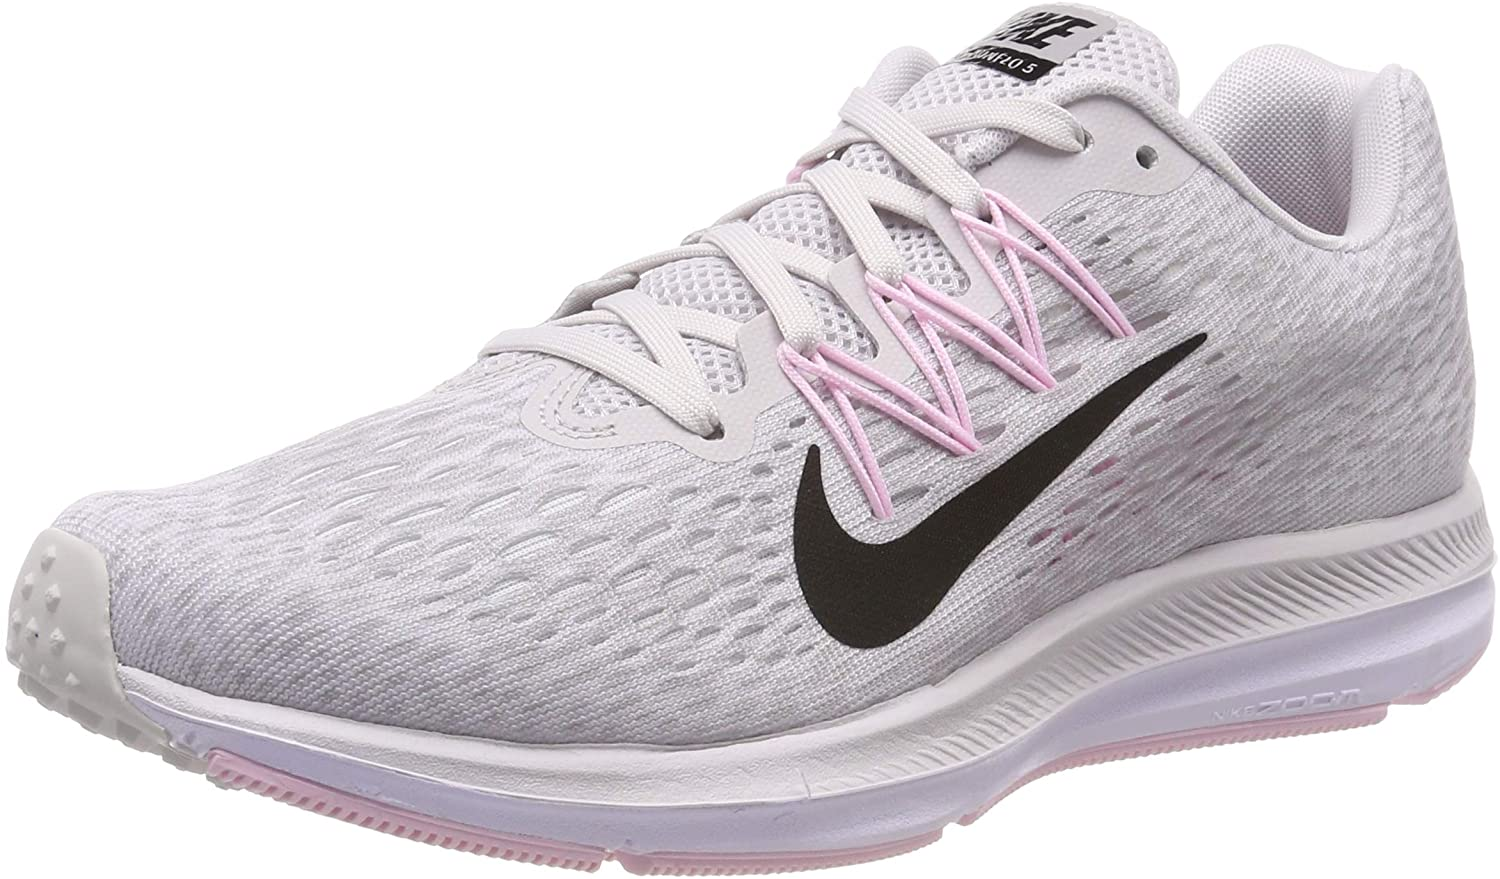 Nike Women s Air Zoom Winflo 5 Running Shoes